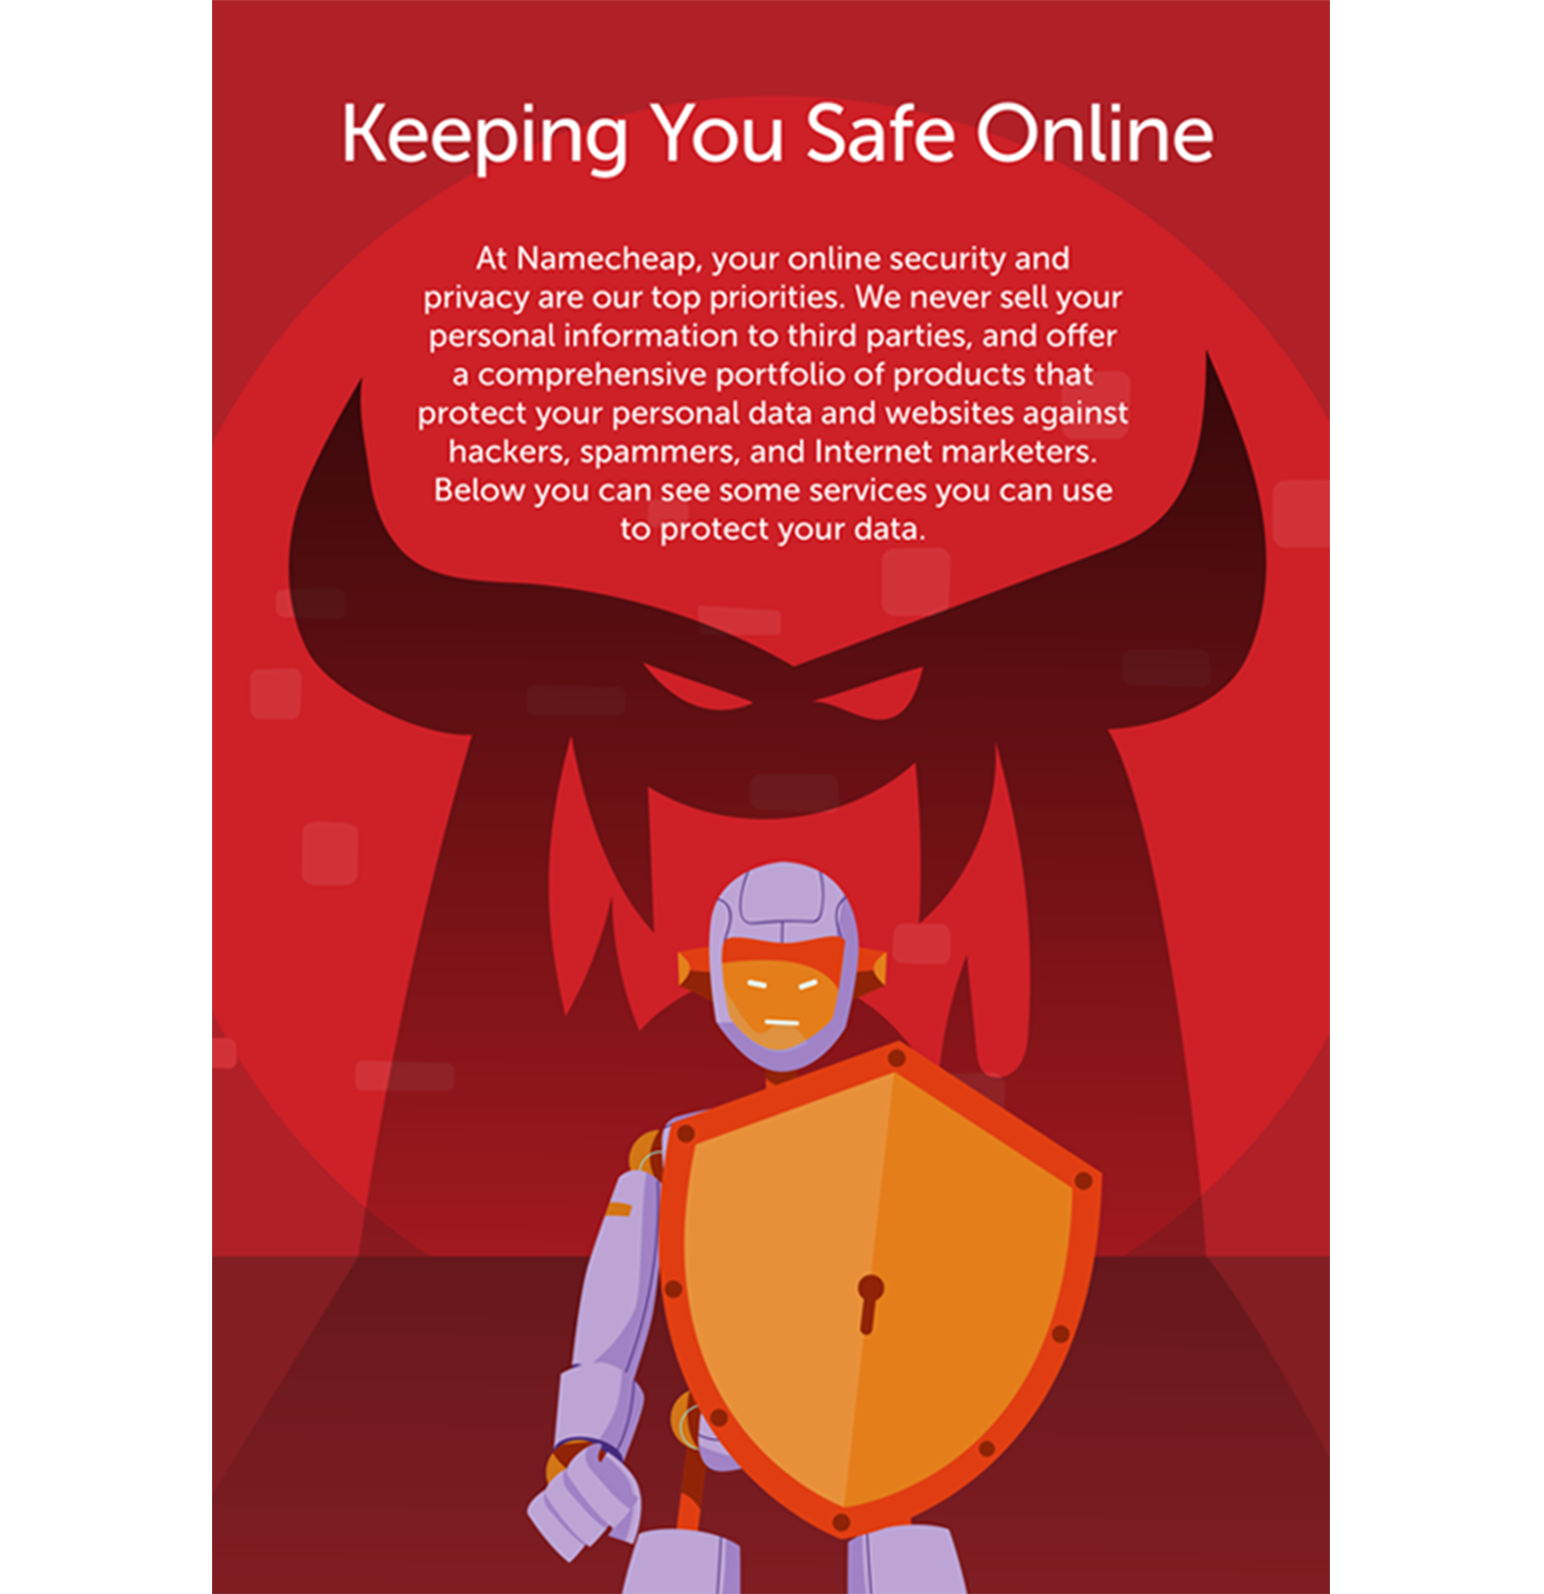 Namecheap graphic about online security